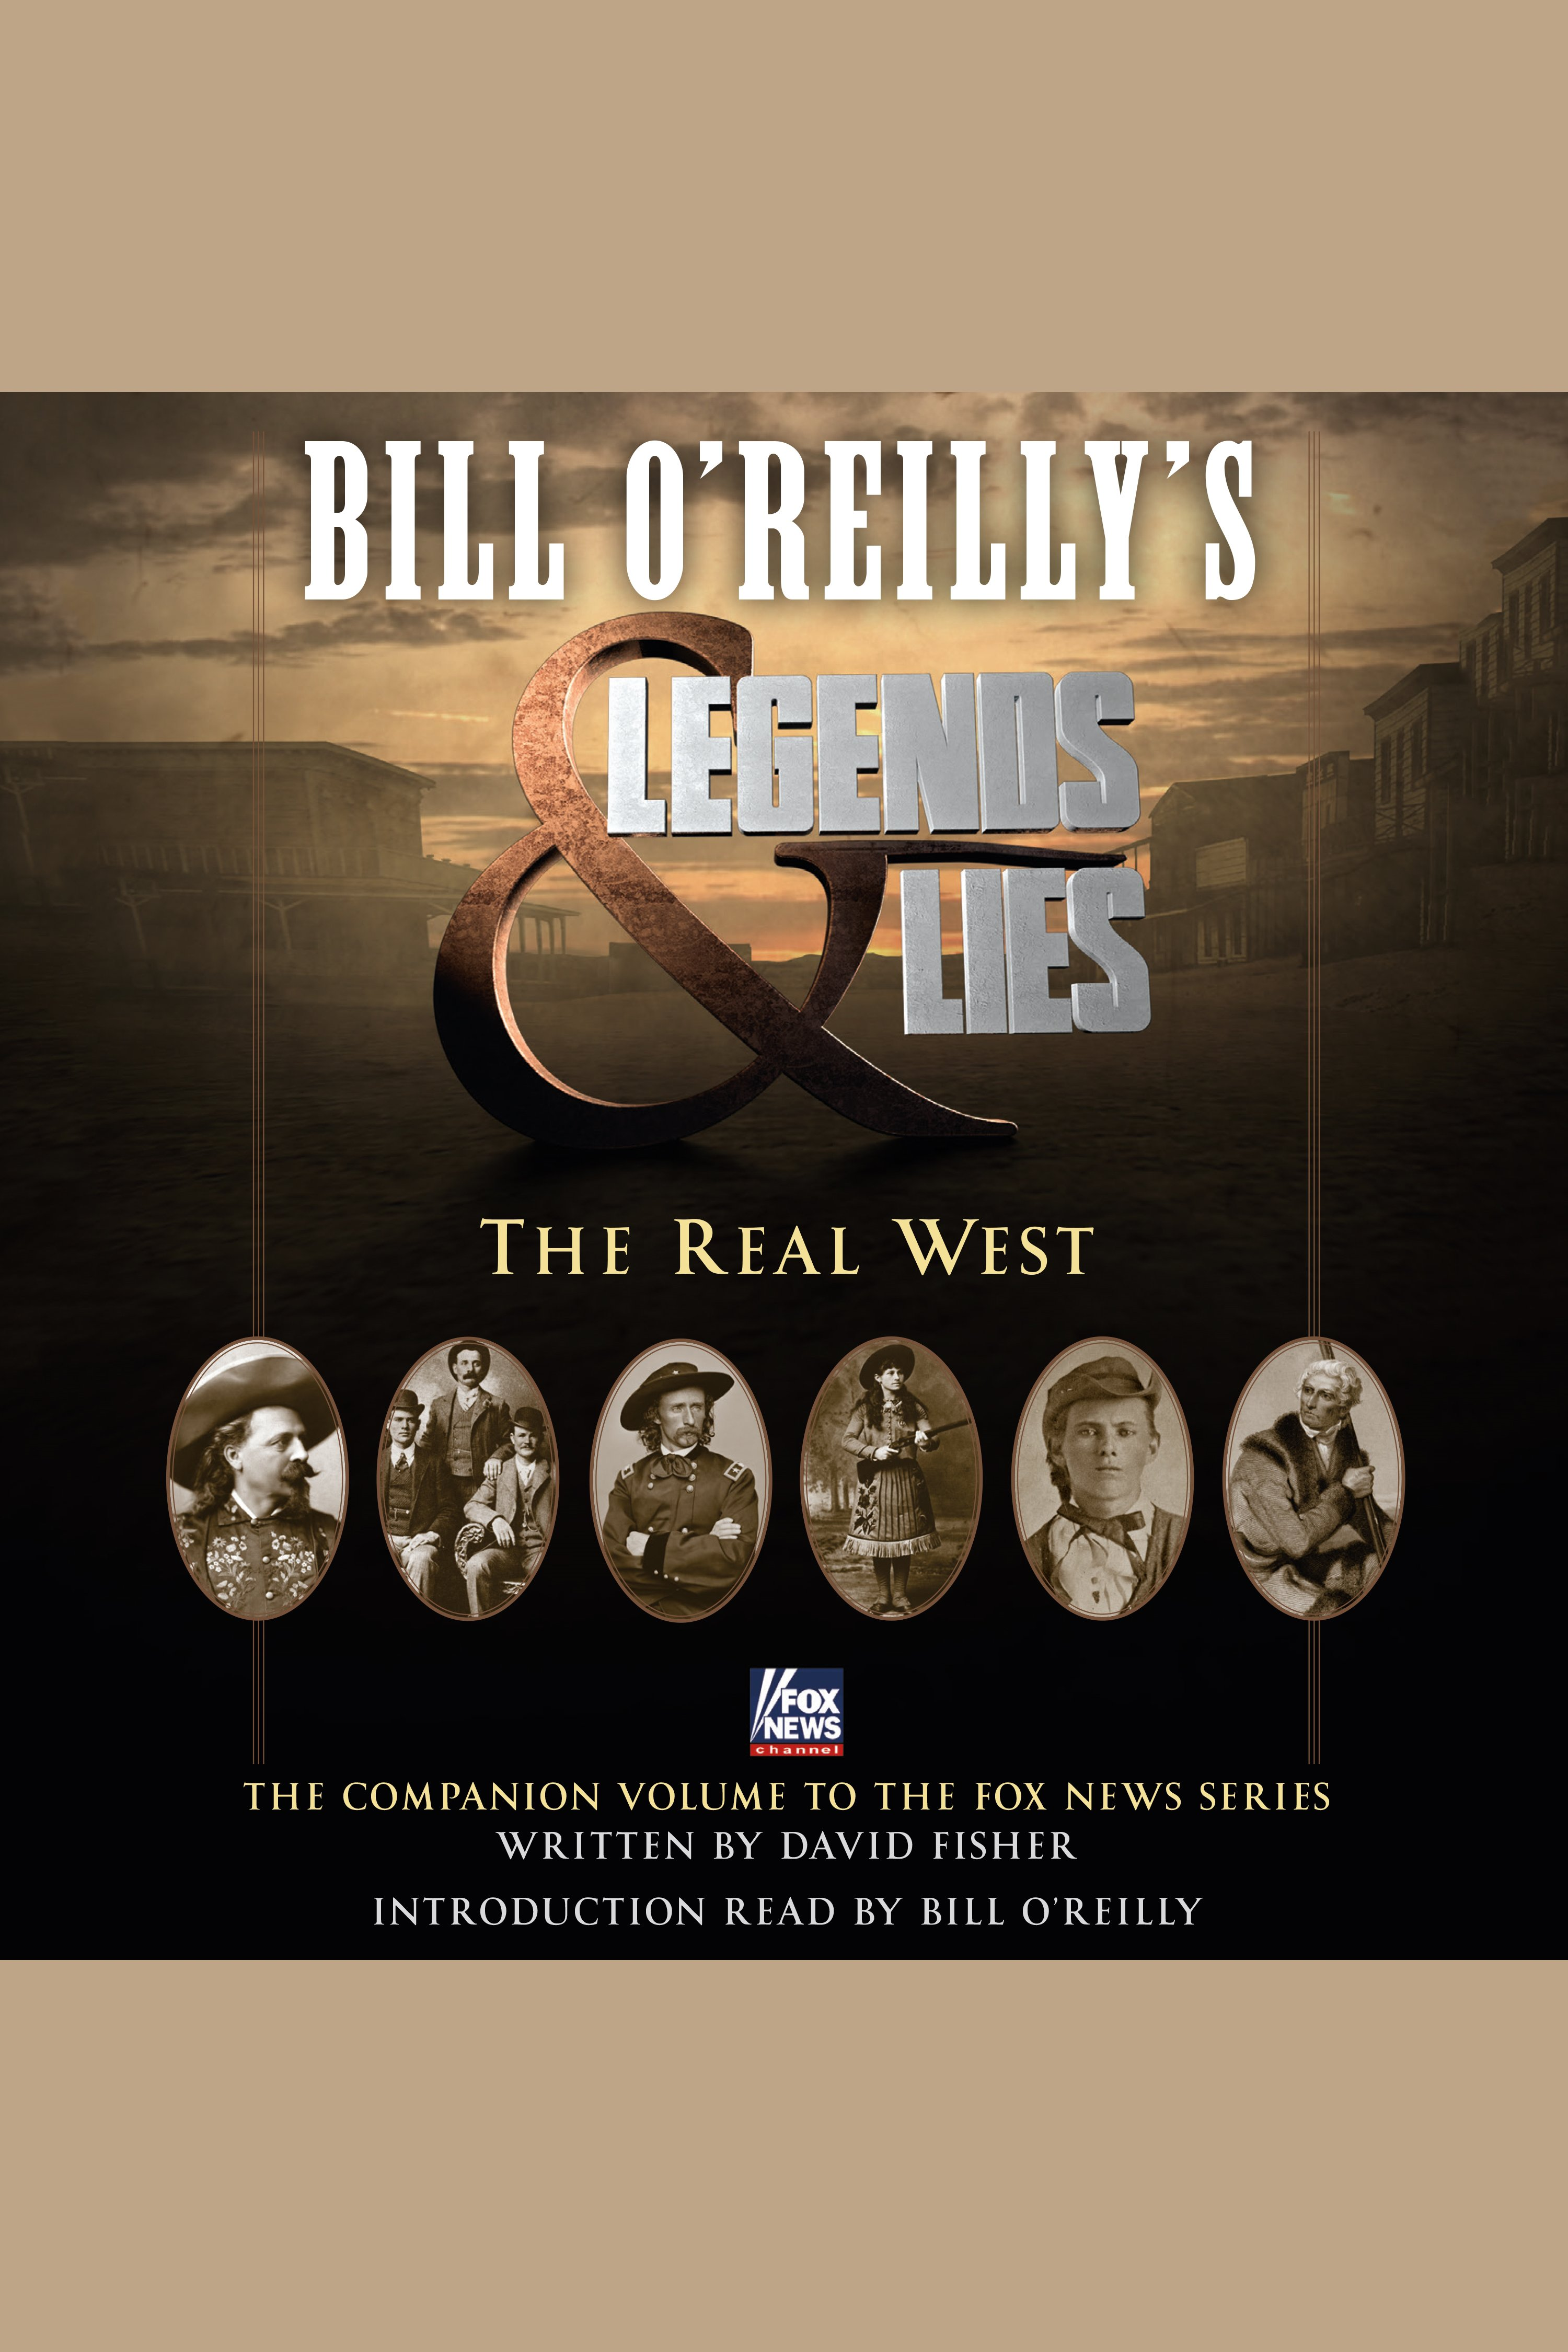 Bill O'Reilly's Legends and Lies The Real West